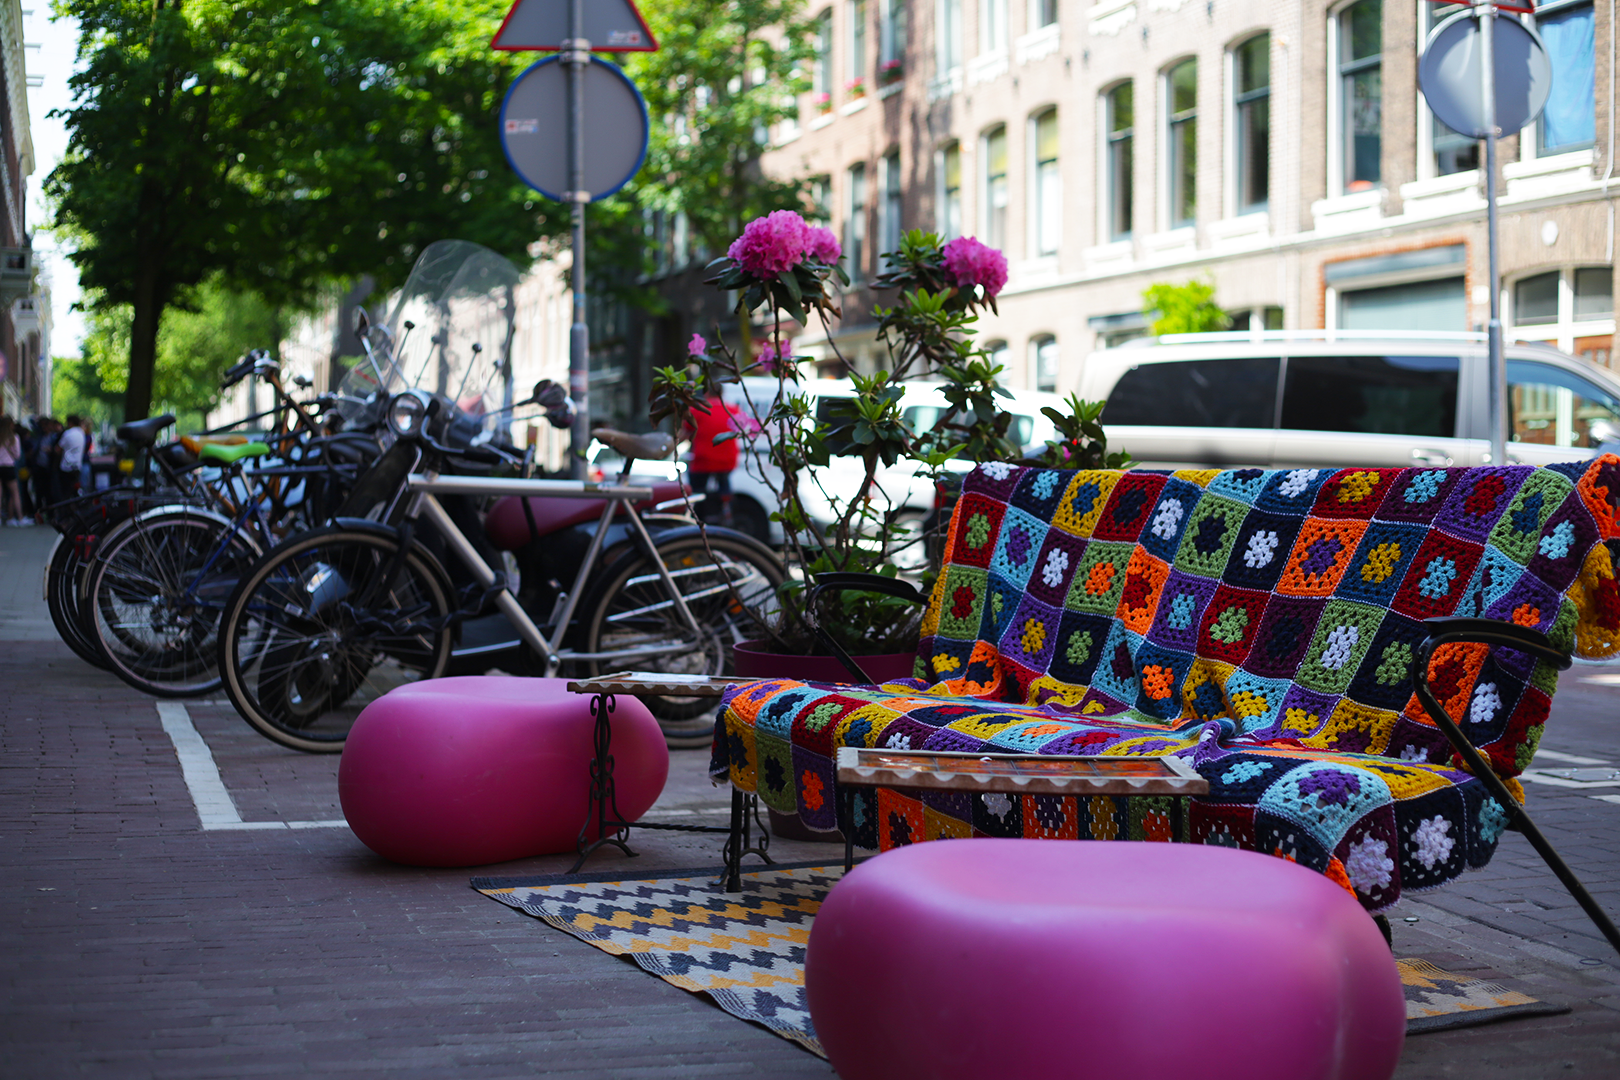 Colorful neighborhood street furniture across from Marie Heinekenplein, Amsterdam, the Netherlands